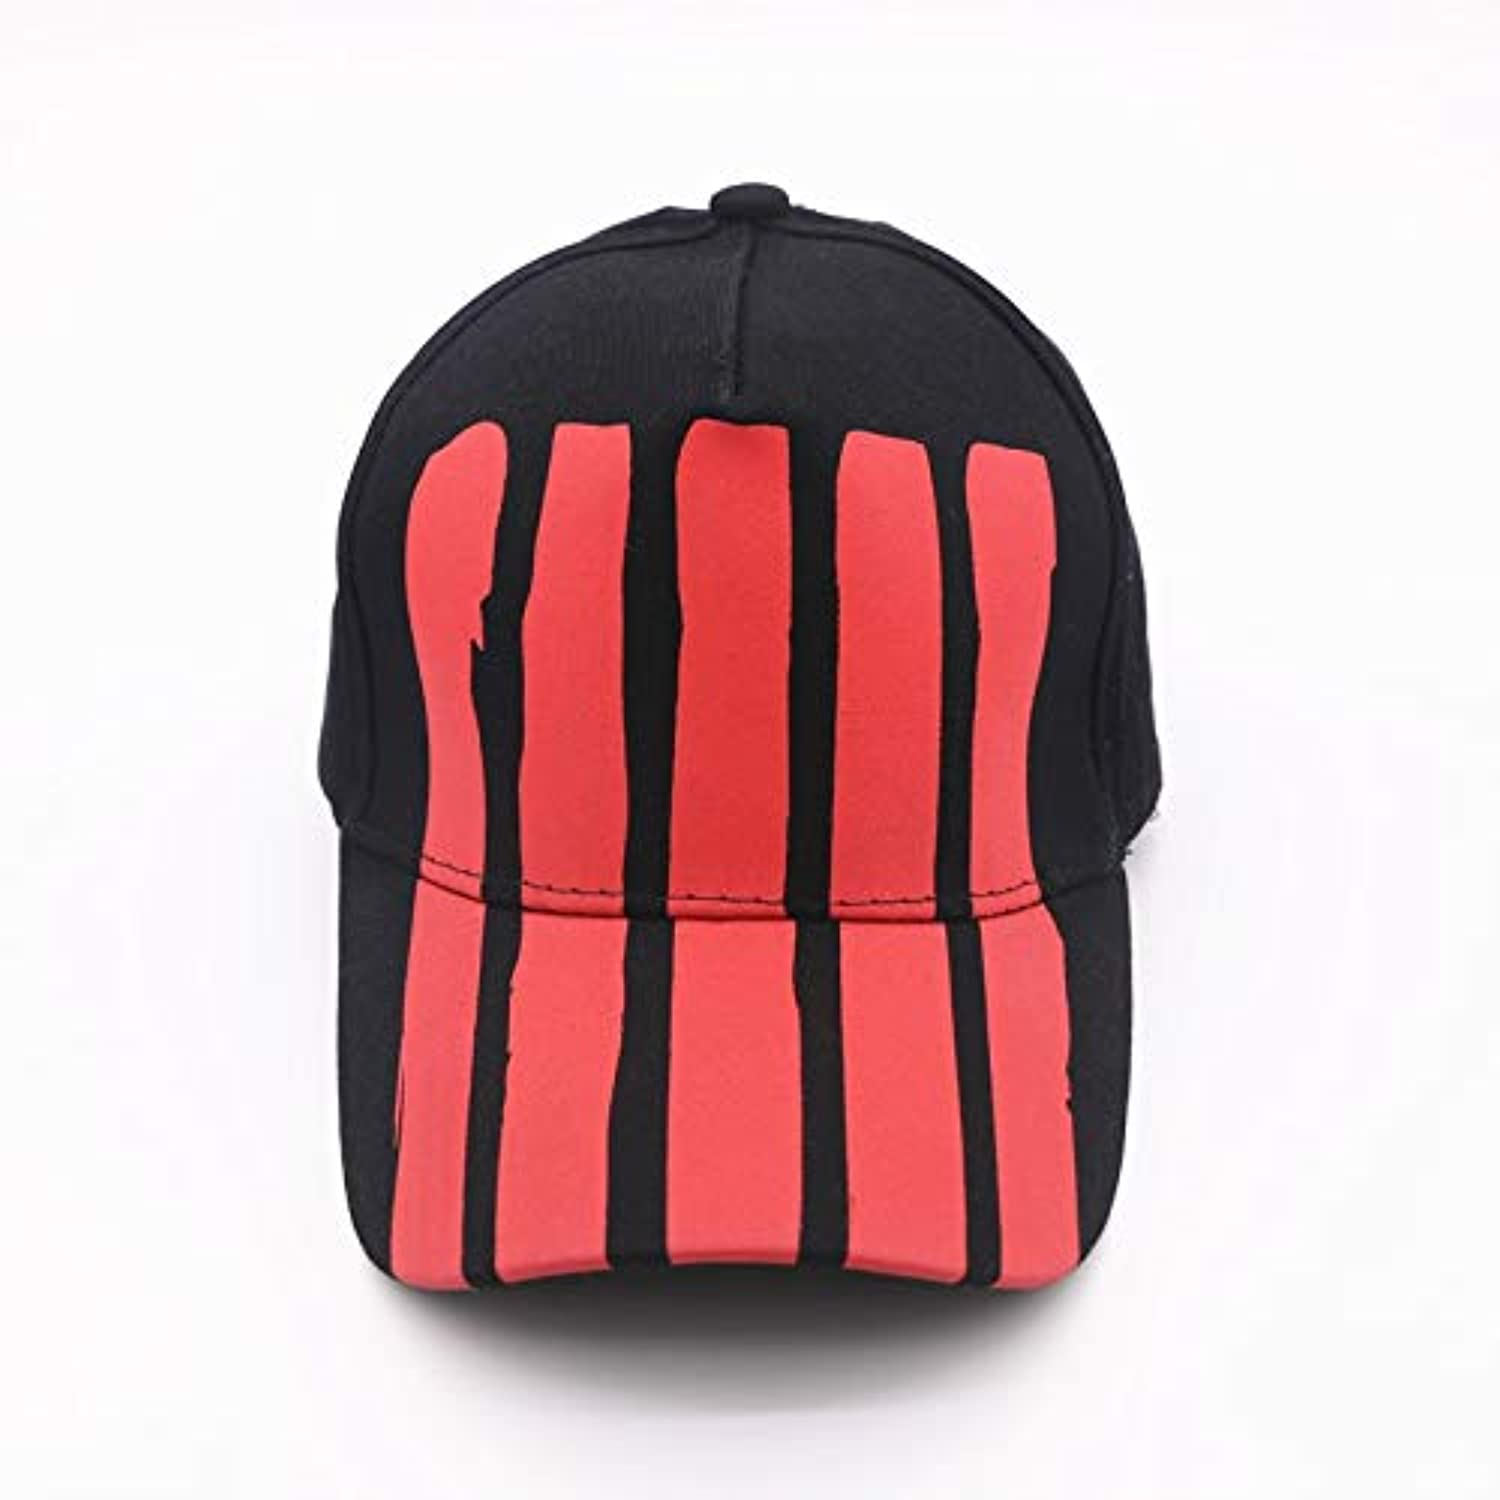 06dcb29d6 WLEZY Baseball Cap Men Women Striped red Black Adjustable Casual Baseball  Cap Snapback Unisex hat Sports